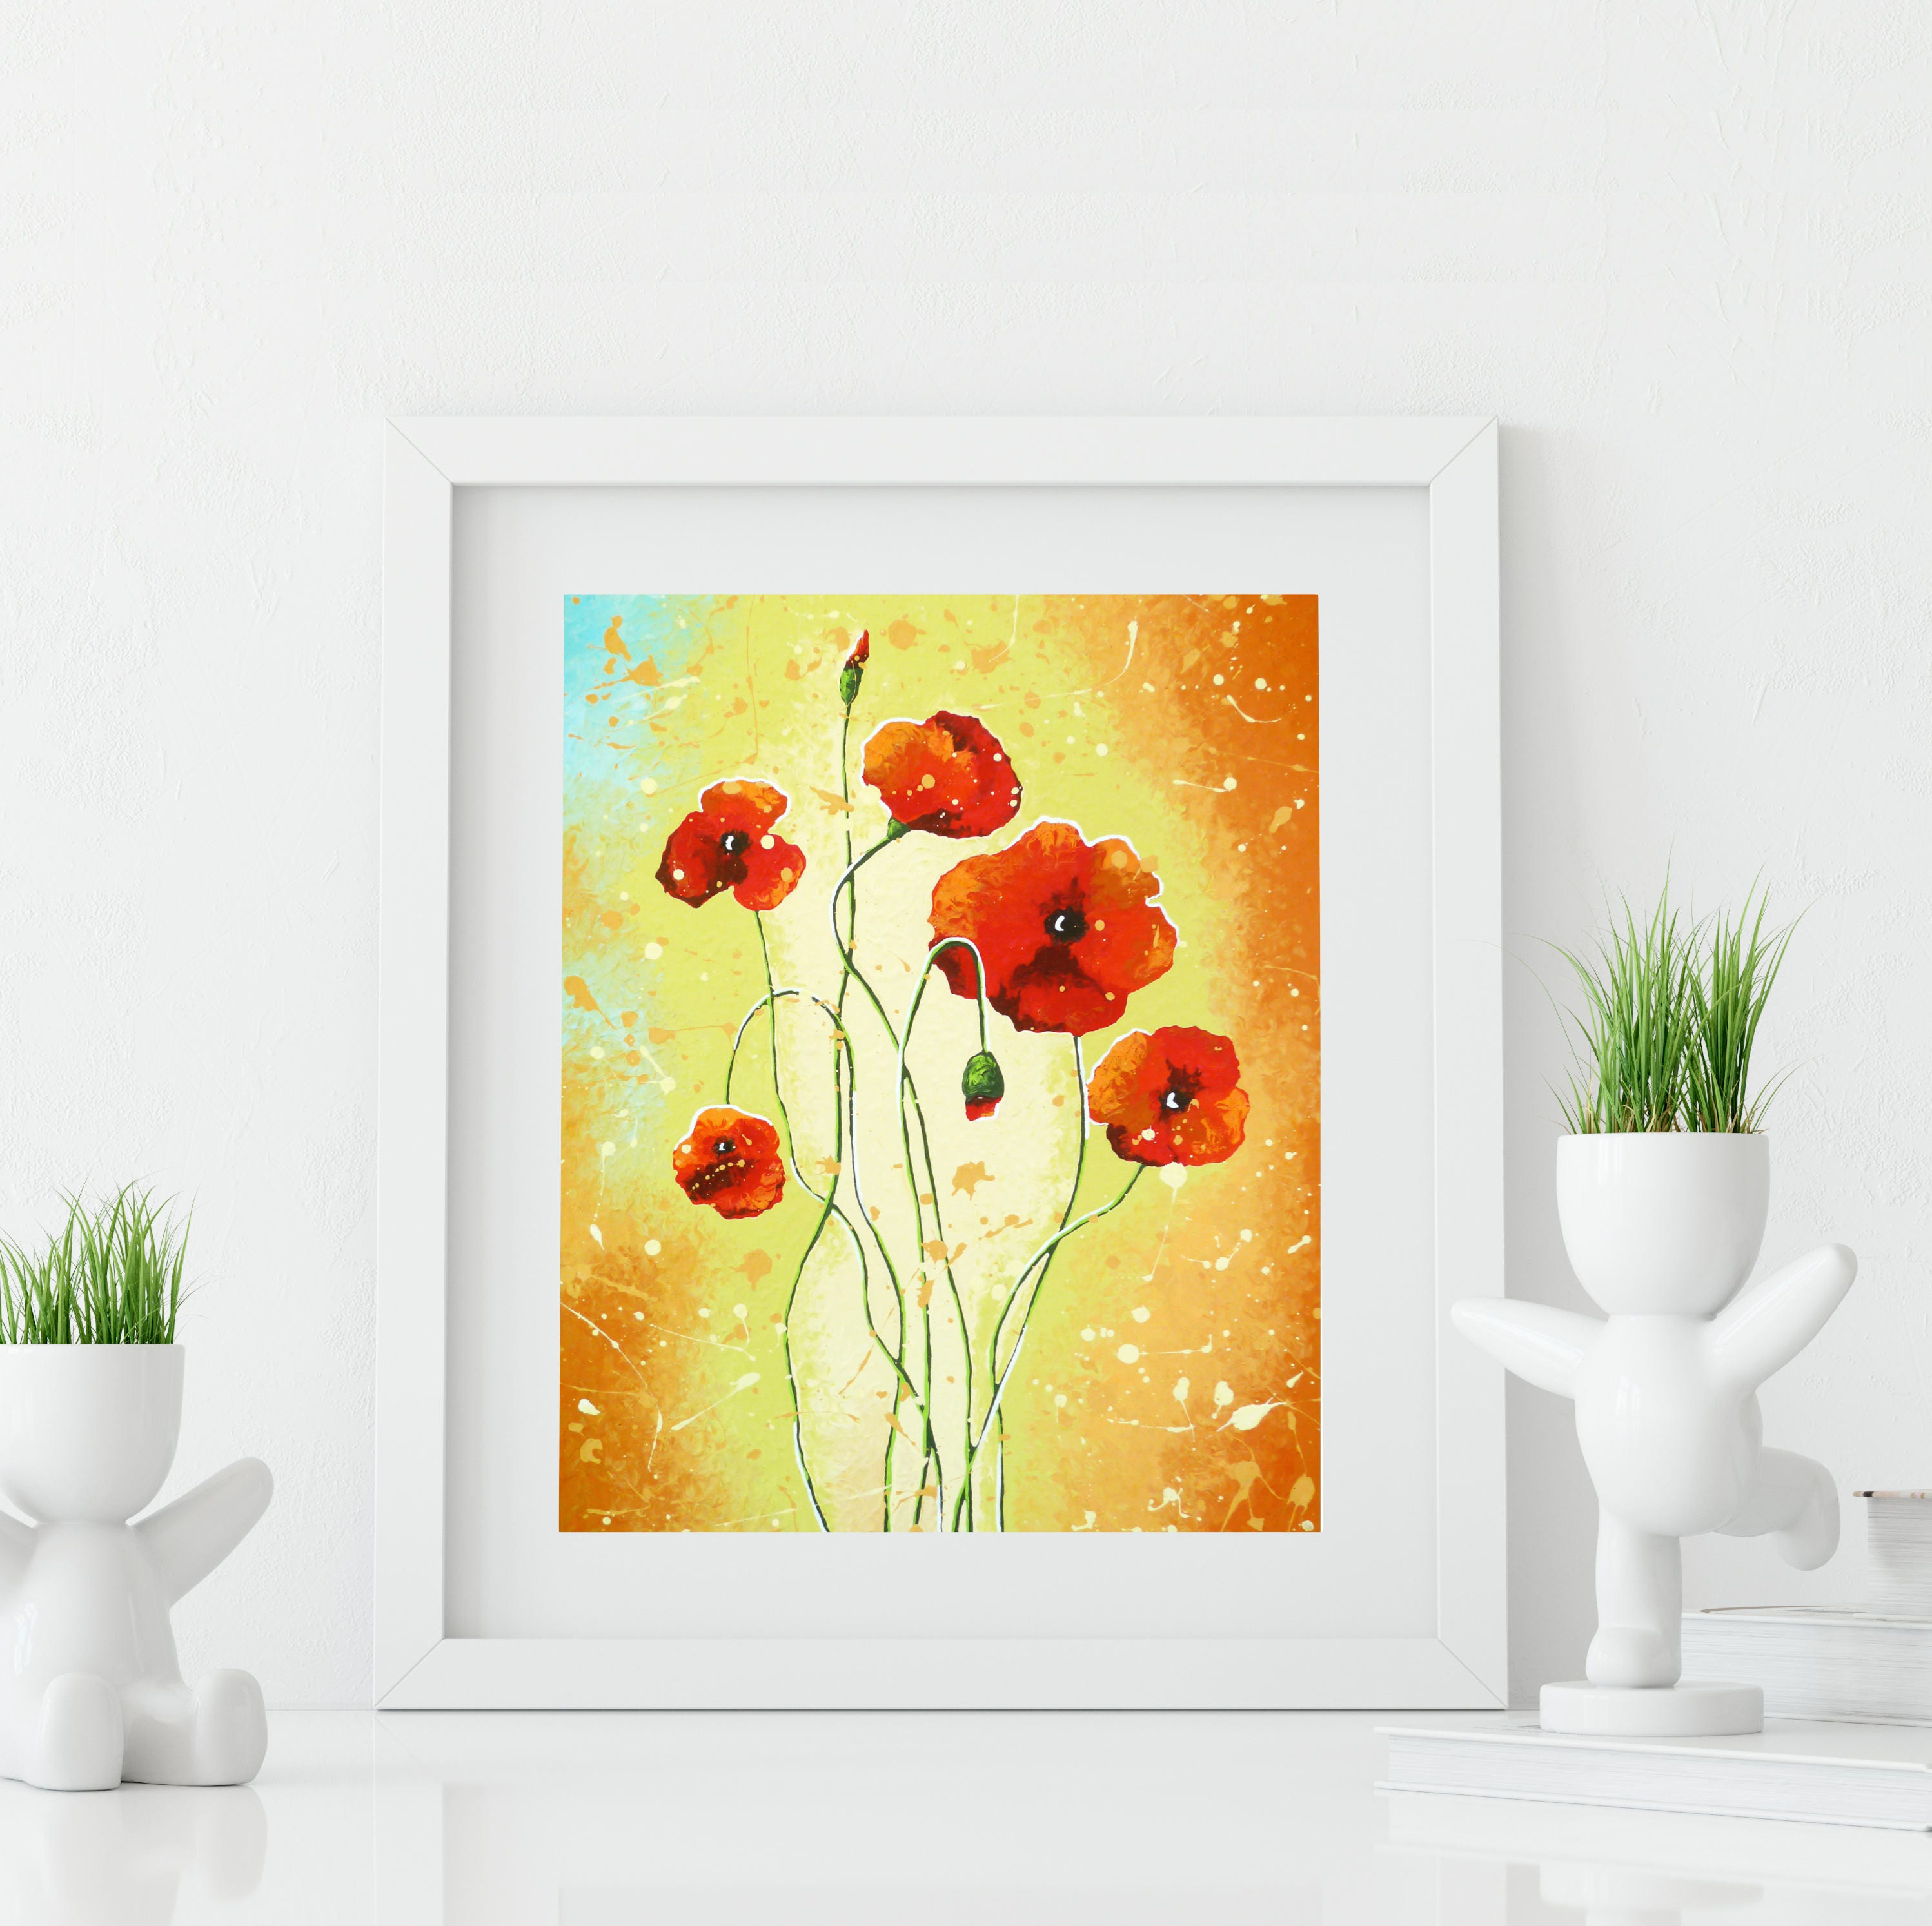 Wonderful Wall Decor Flower Pictures Inspiration - The Wall Art ...